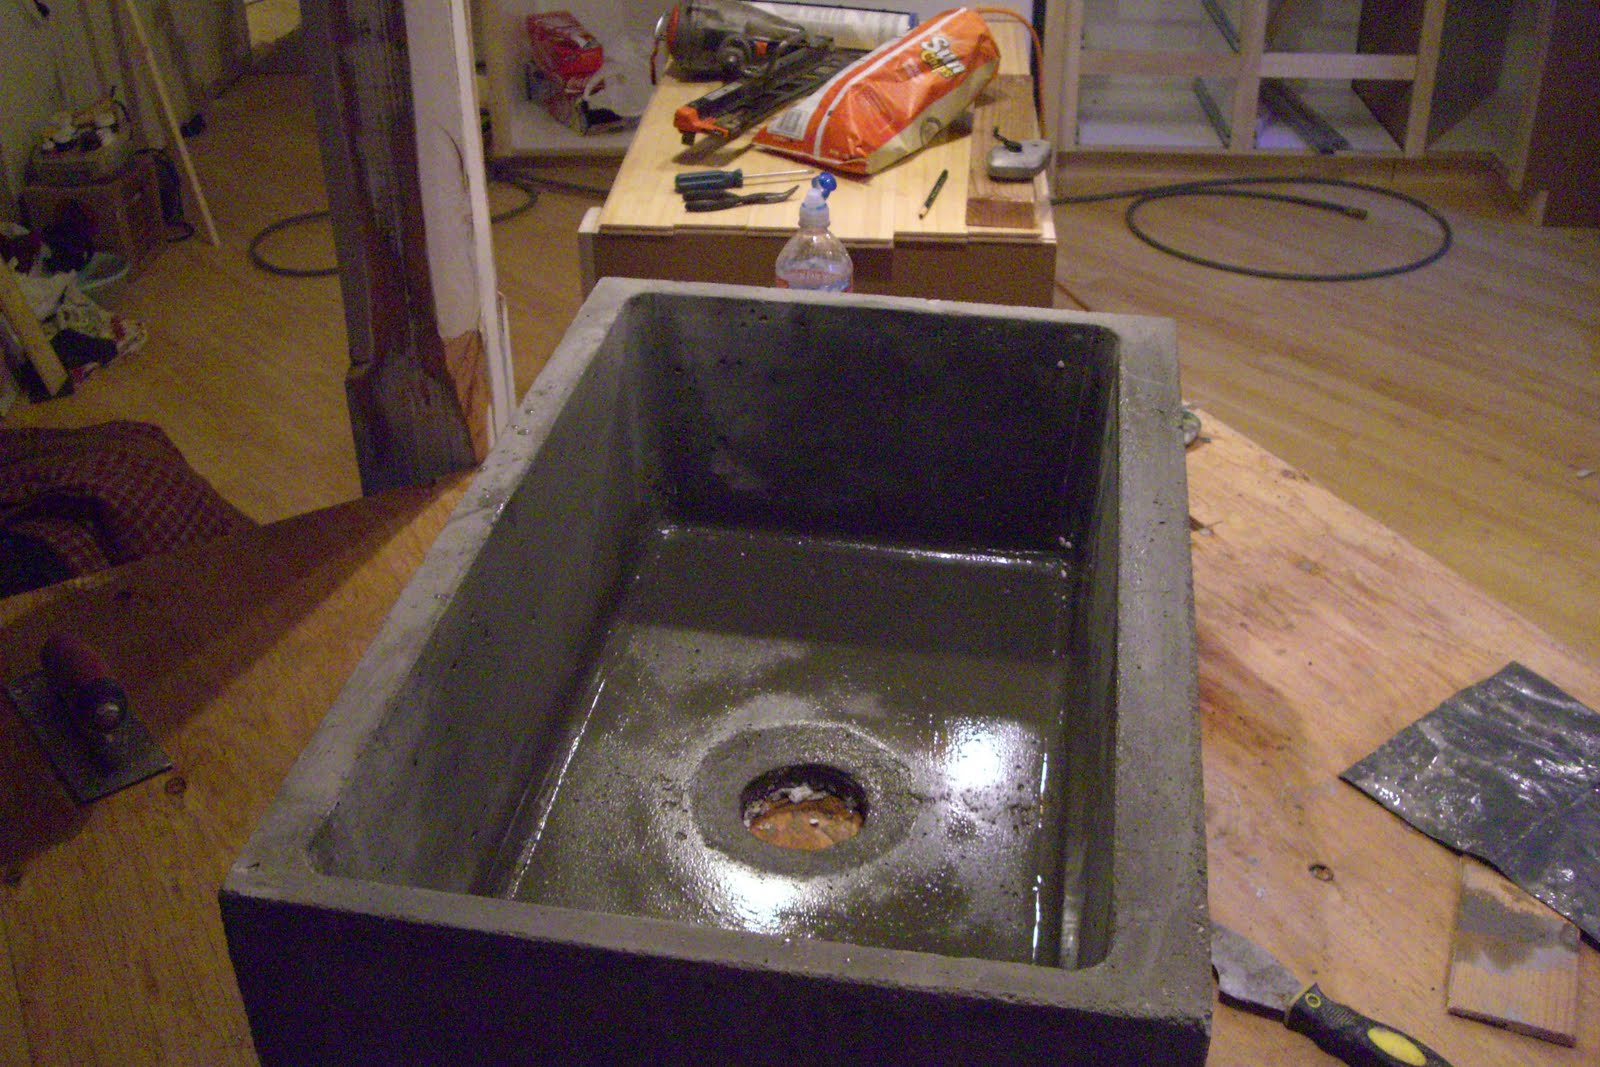 Concrete Countertop Edge Molds Concrete Countertops Large Farm Sink Just Out Of The Mold